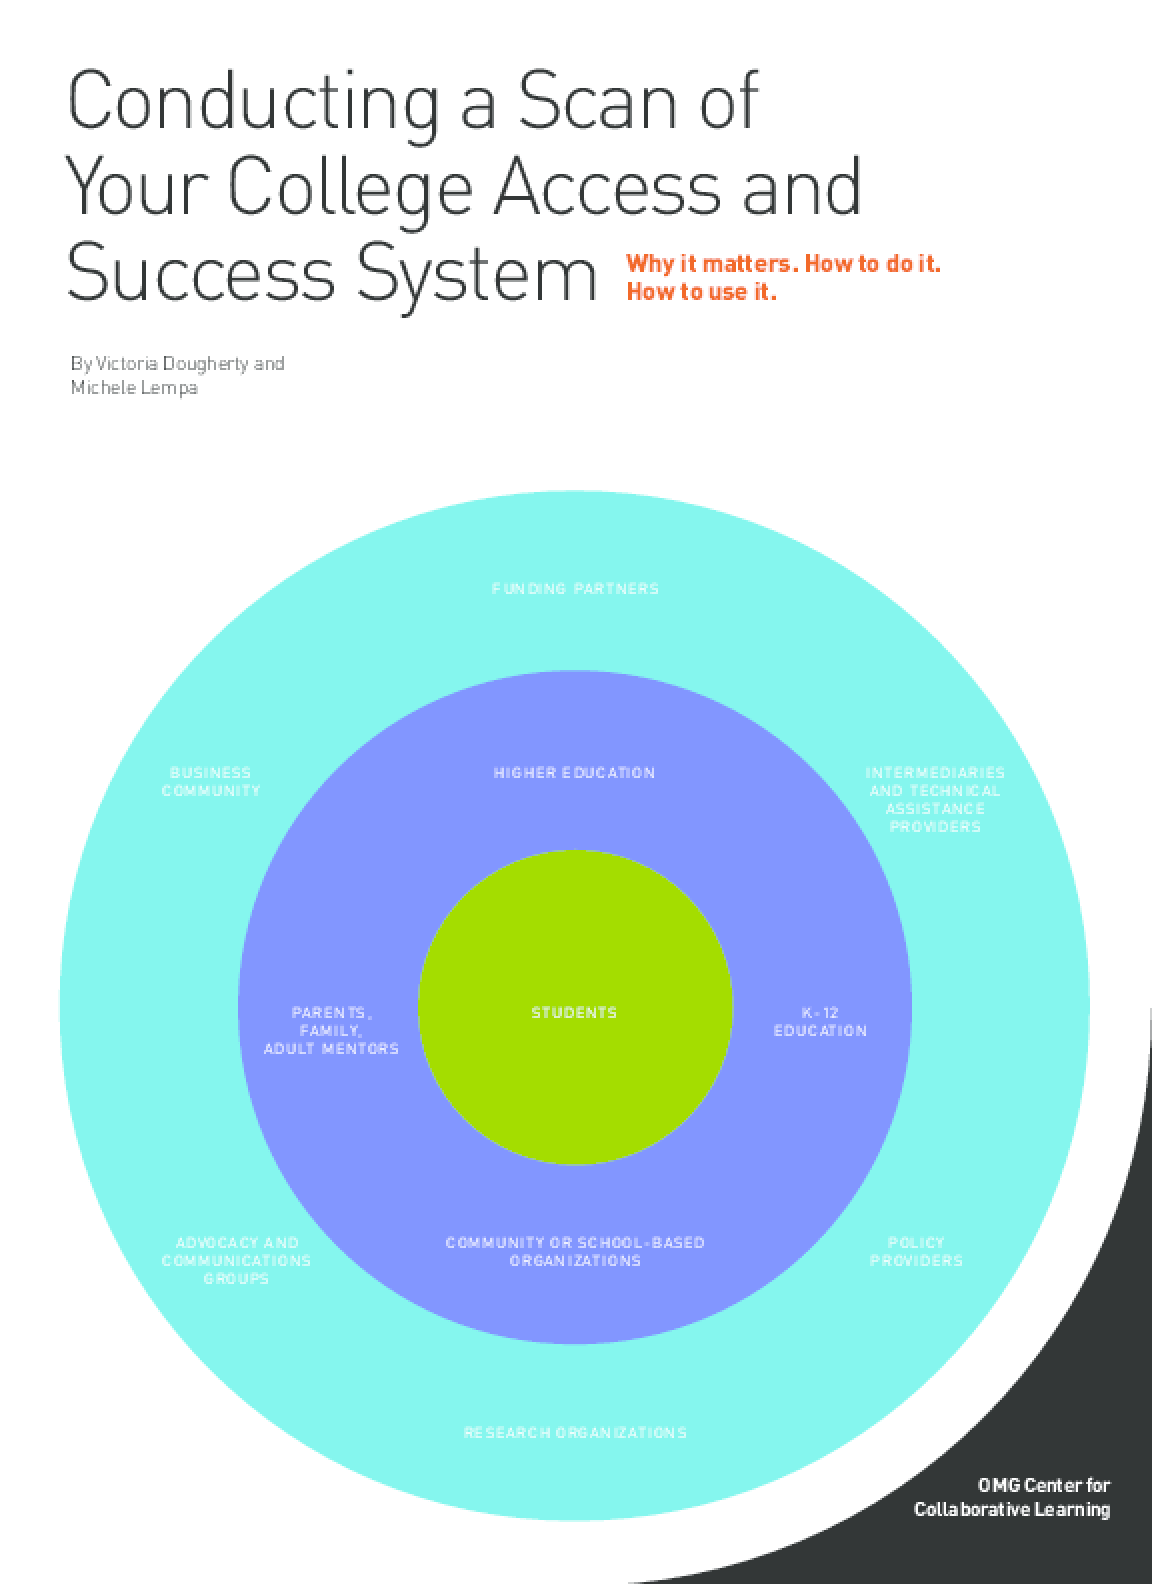 Conducting a Scan of Your College Access and Success System